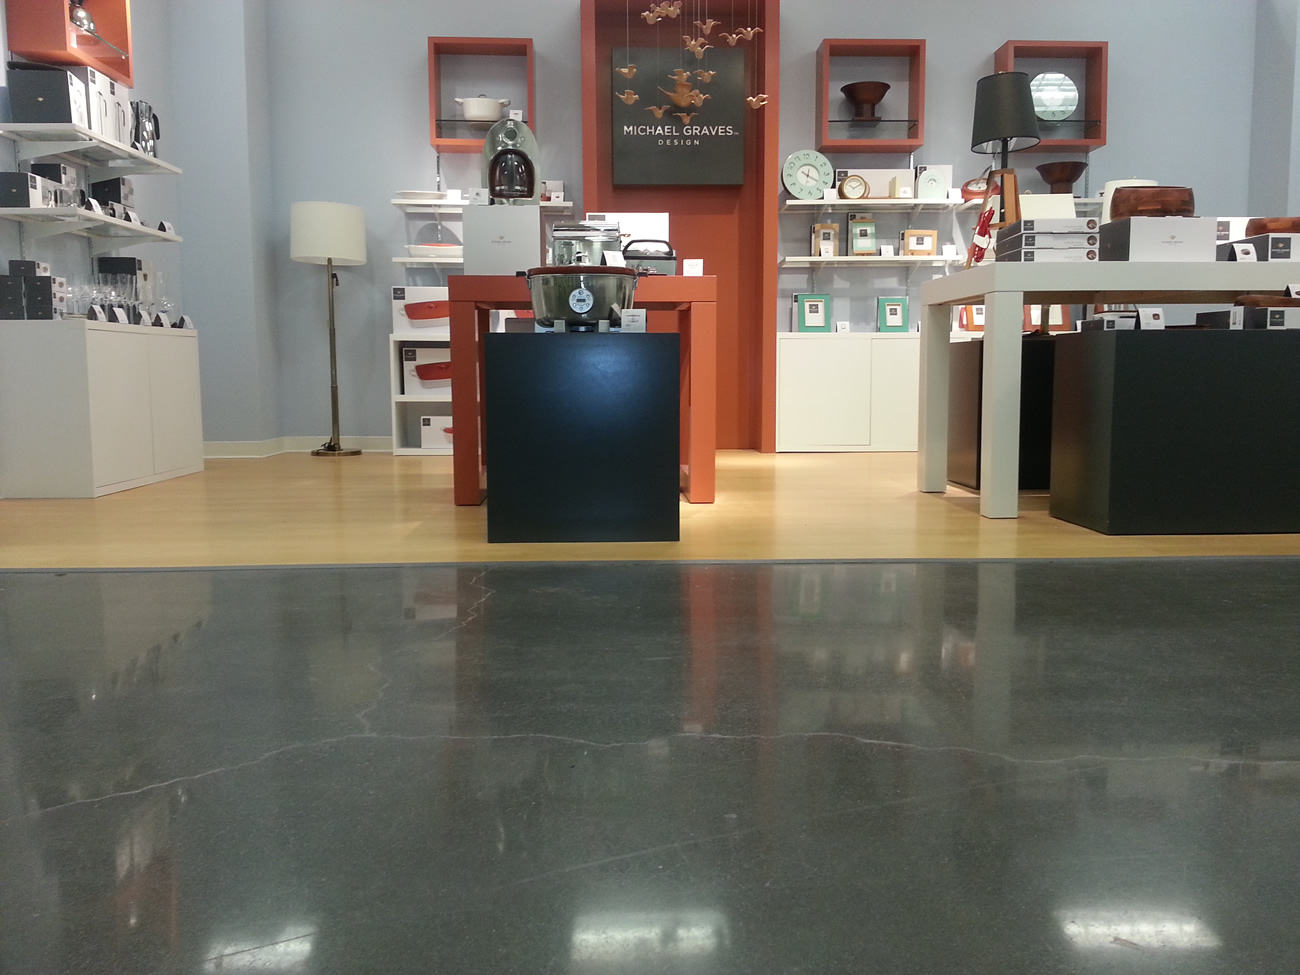 Polished Concrete Floor At A Retail Store